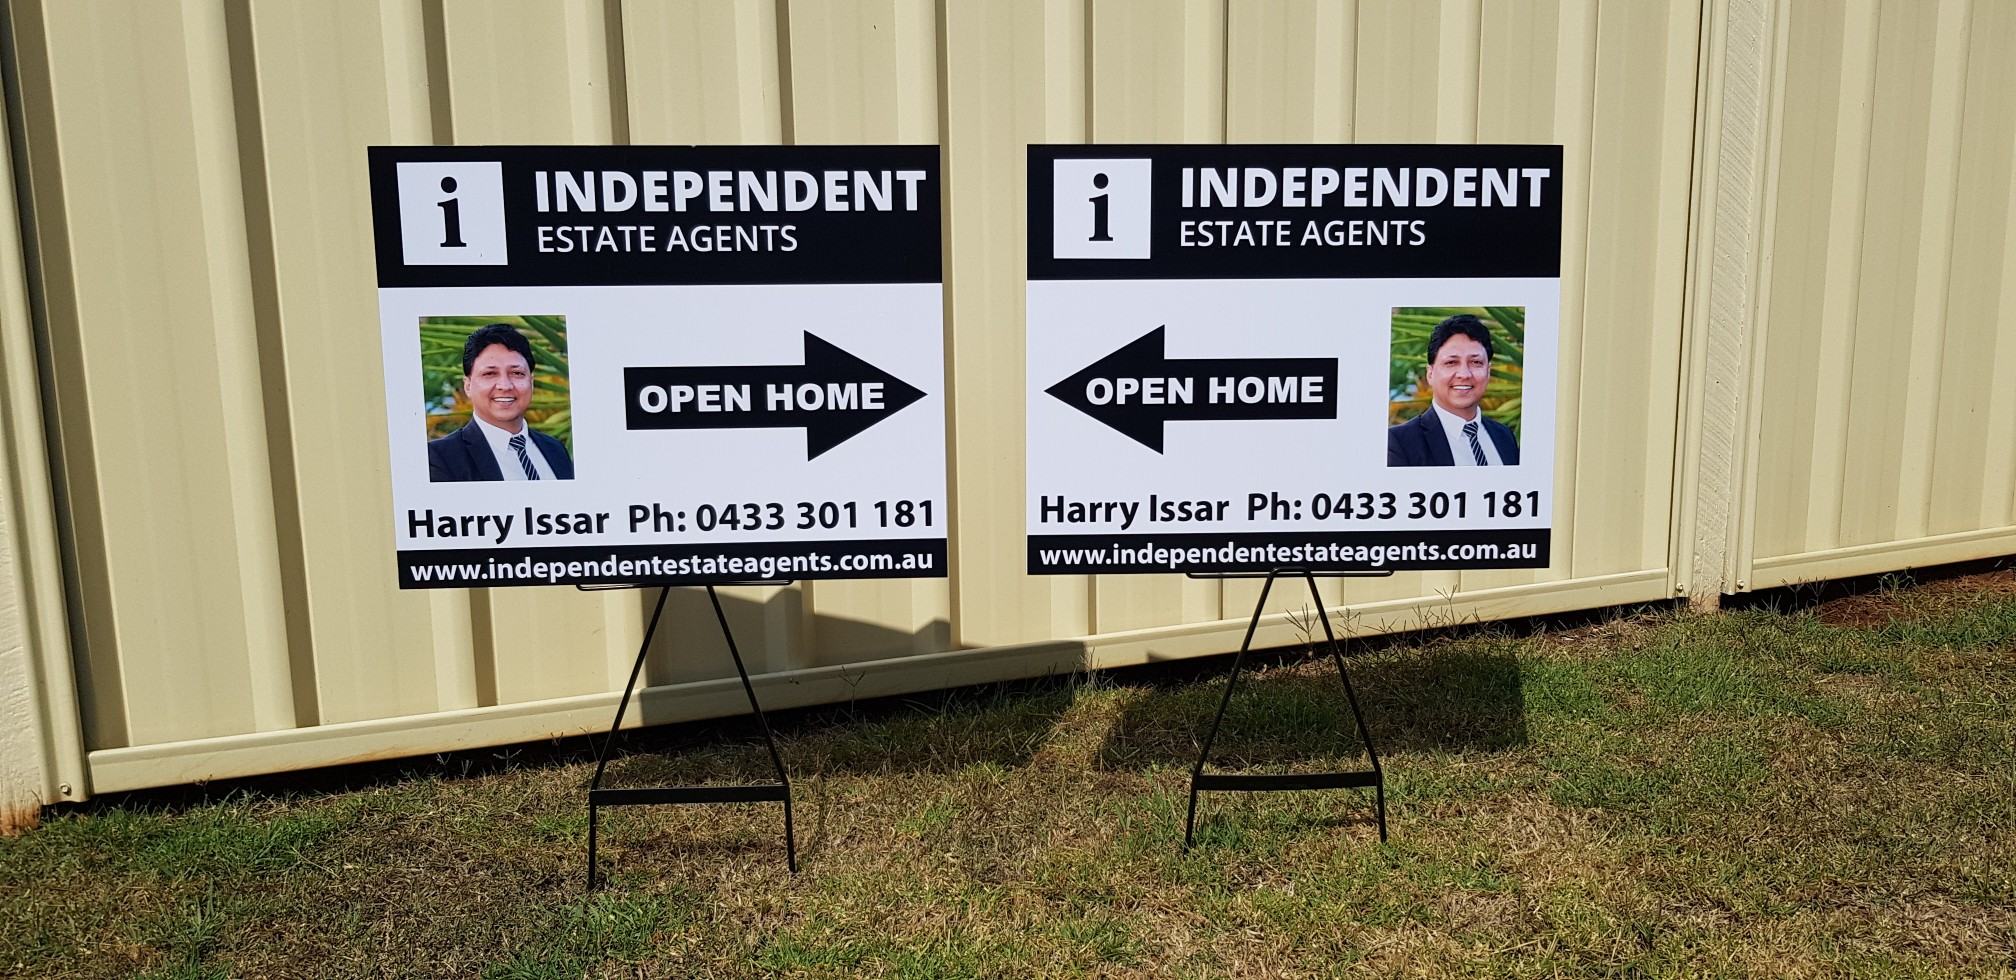 independent-estate-agents-450x600mm-corflute-signs.jpg